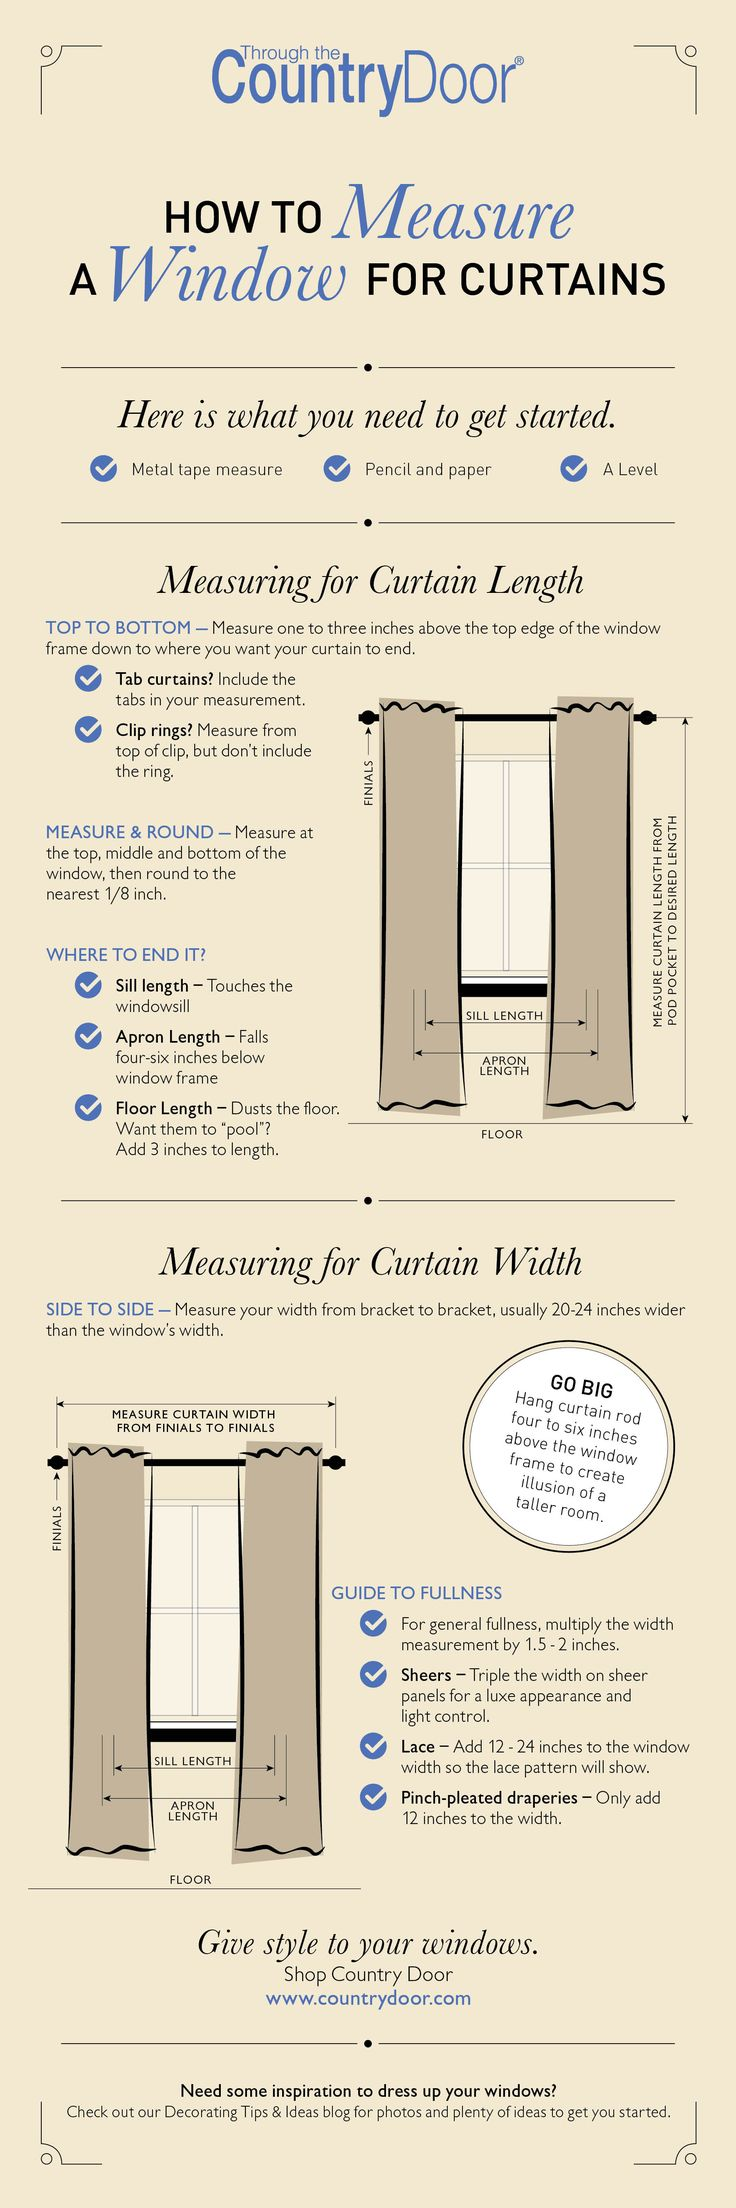 Your Guide for Curtains and Window Treatments Measuring for your own curtains or drapes is not hard, but it isn't quite that easy either. It can depend on the type of rod, the type of hardware used to attach the curtains to the rod, and whether the curtains will be opened and closed. When you measure correctly, you will have exactly the curtains or drapes that you desire. Need some inspiration? Check out our blog for decorating tips and ideas.